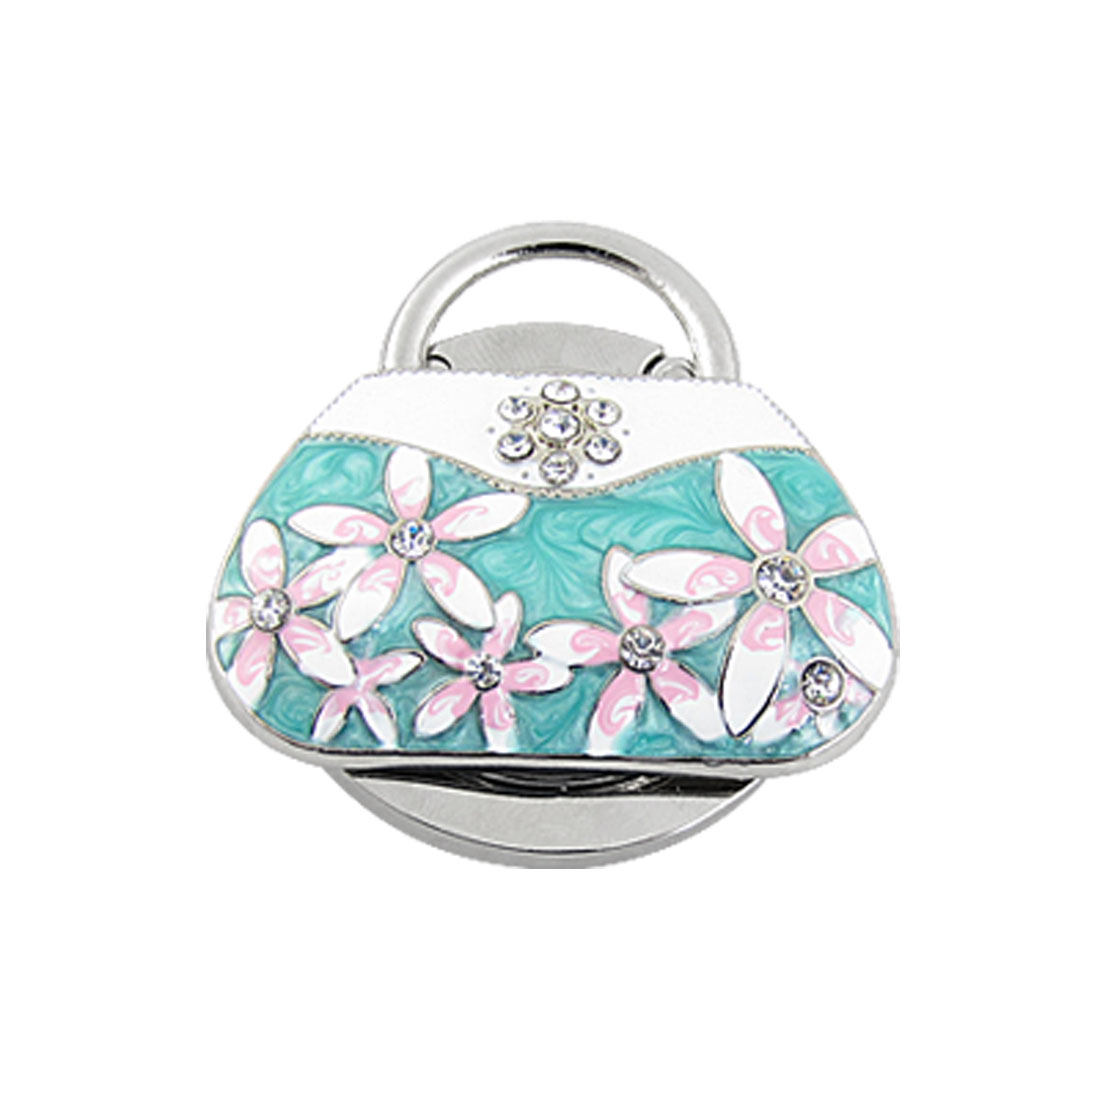 Rhinestone Inlaid Flower Turquoise Green White Handbag Shape Purse Bag Hanger